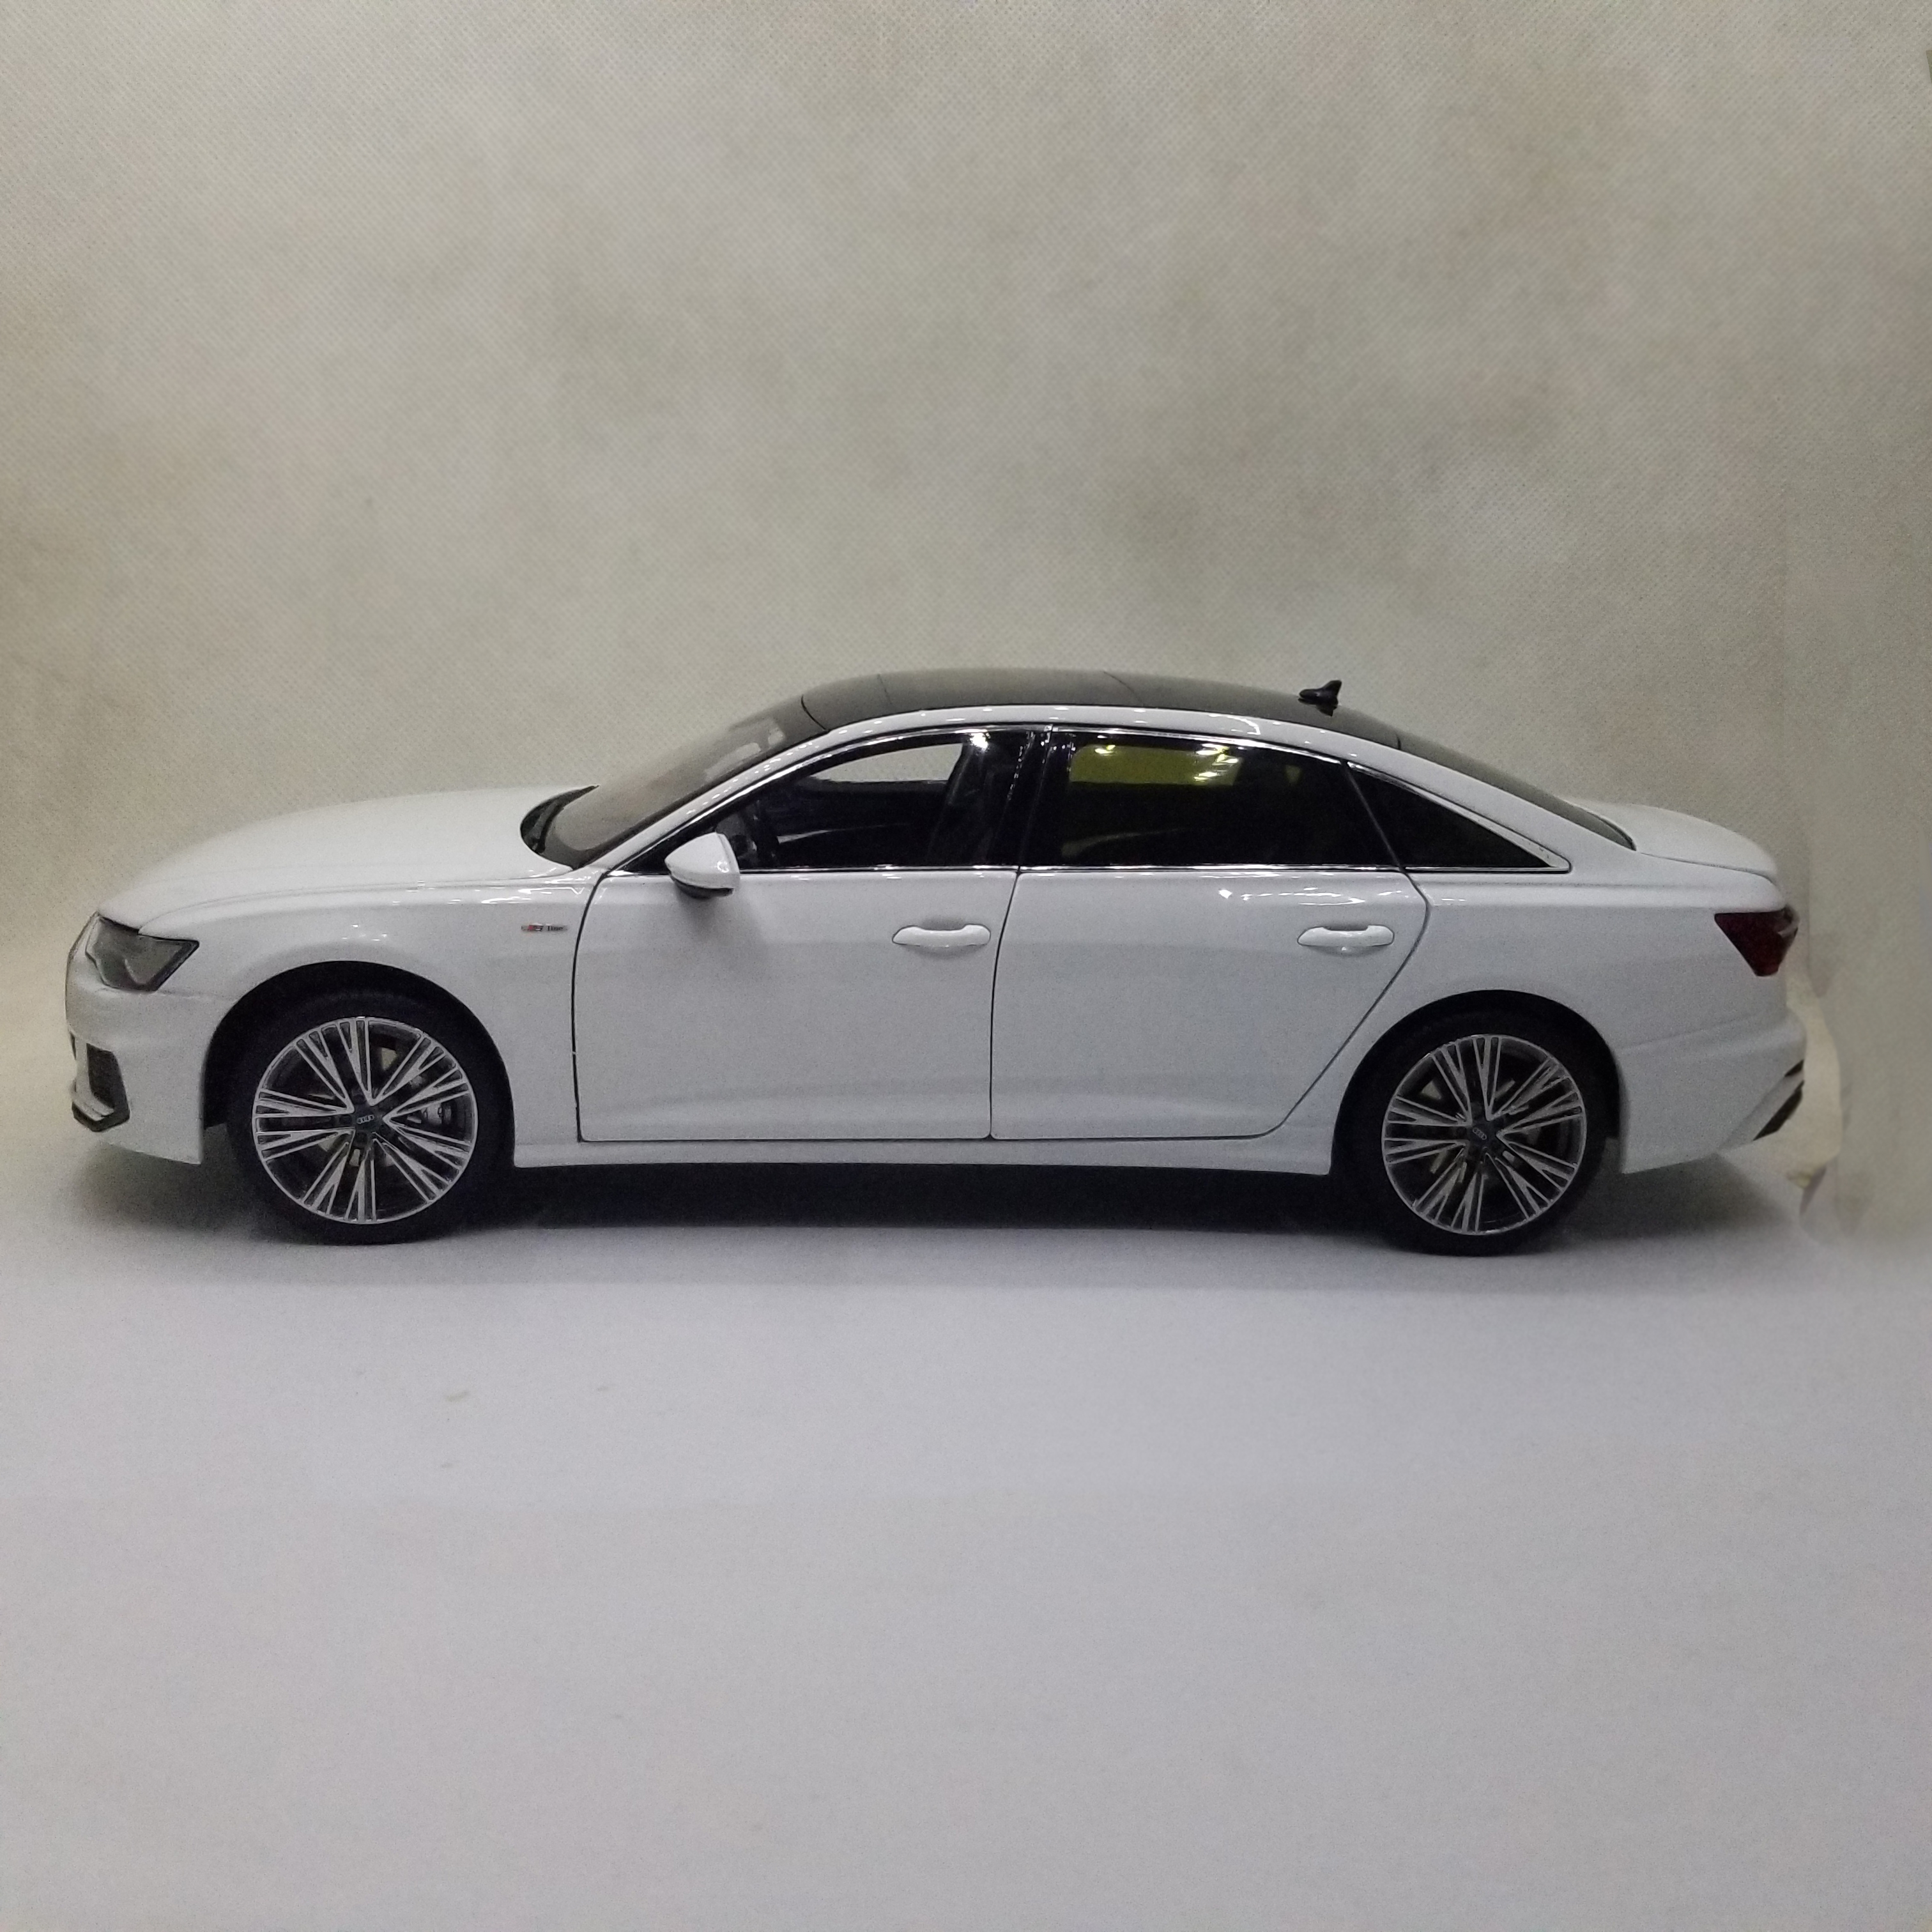 1:18 Diecast Model for Audi A6L 2019 White Sedan Alloy Toy Car Miniature Collection Gifts A6 S6 Alloy Toy Car, Diecast Scale Model Car, Collectible Model Car, Miniature Collection Die-cast Toy Vehicles Gifts